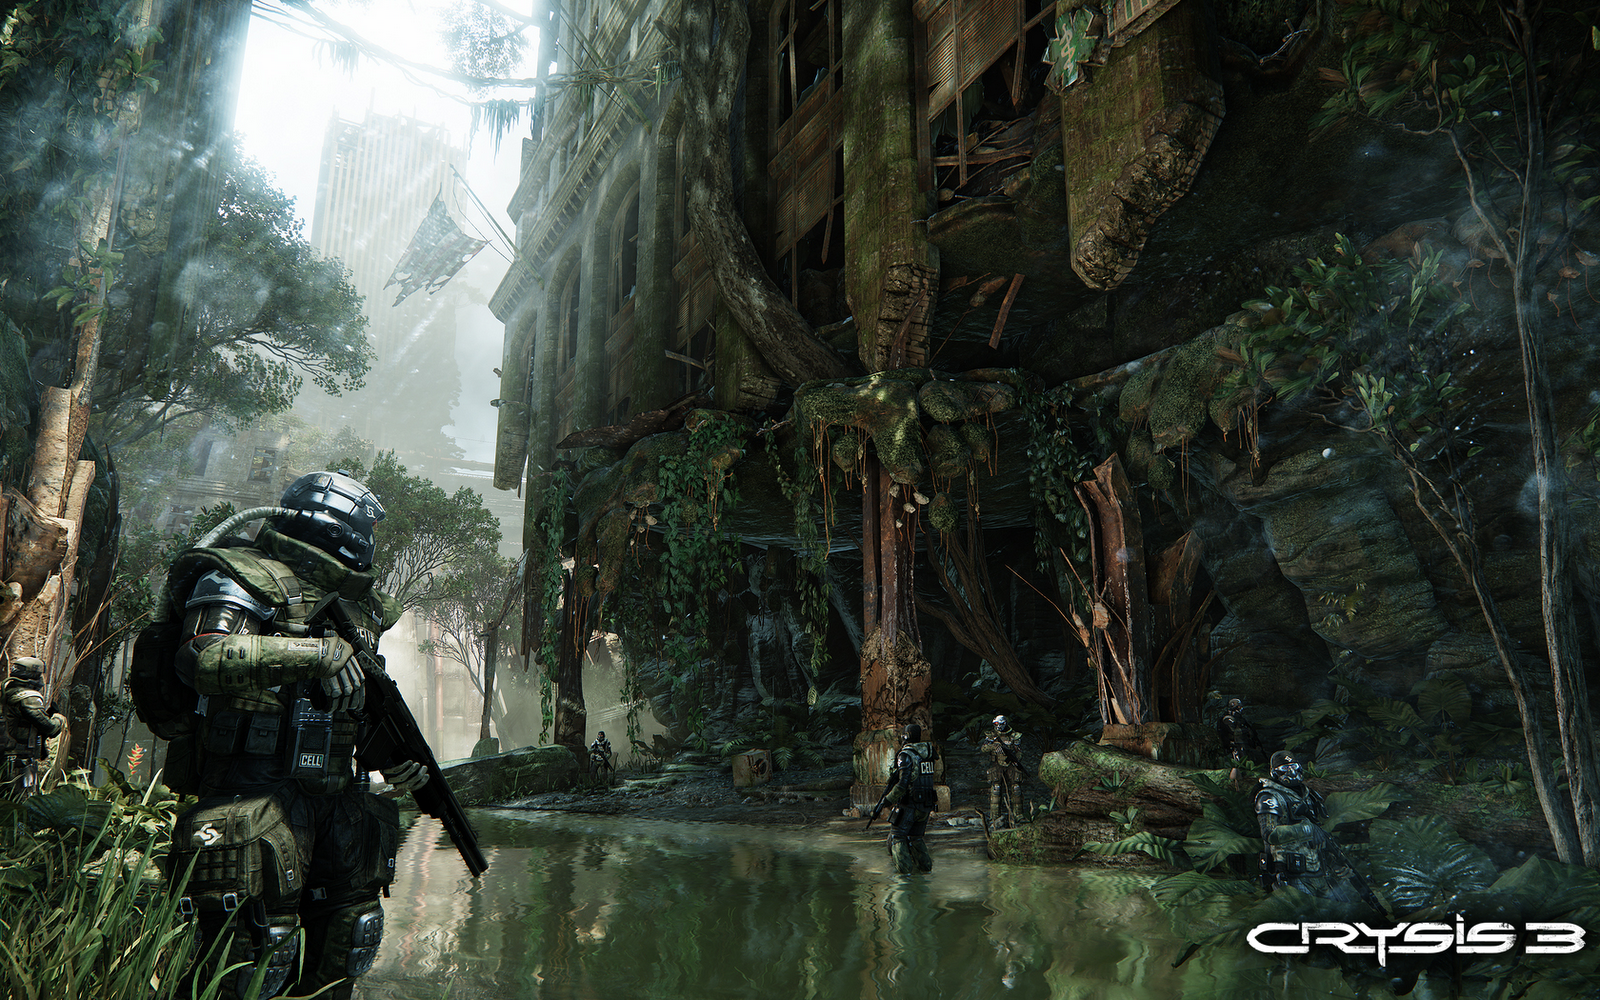 crysis 3 new game hd wallpapers and dvd cover desktop